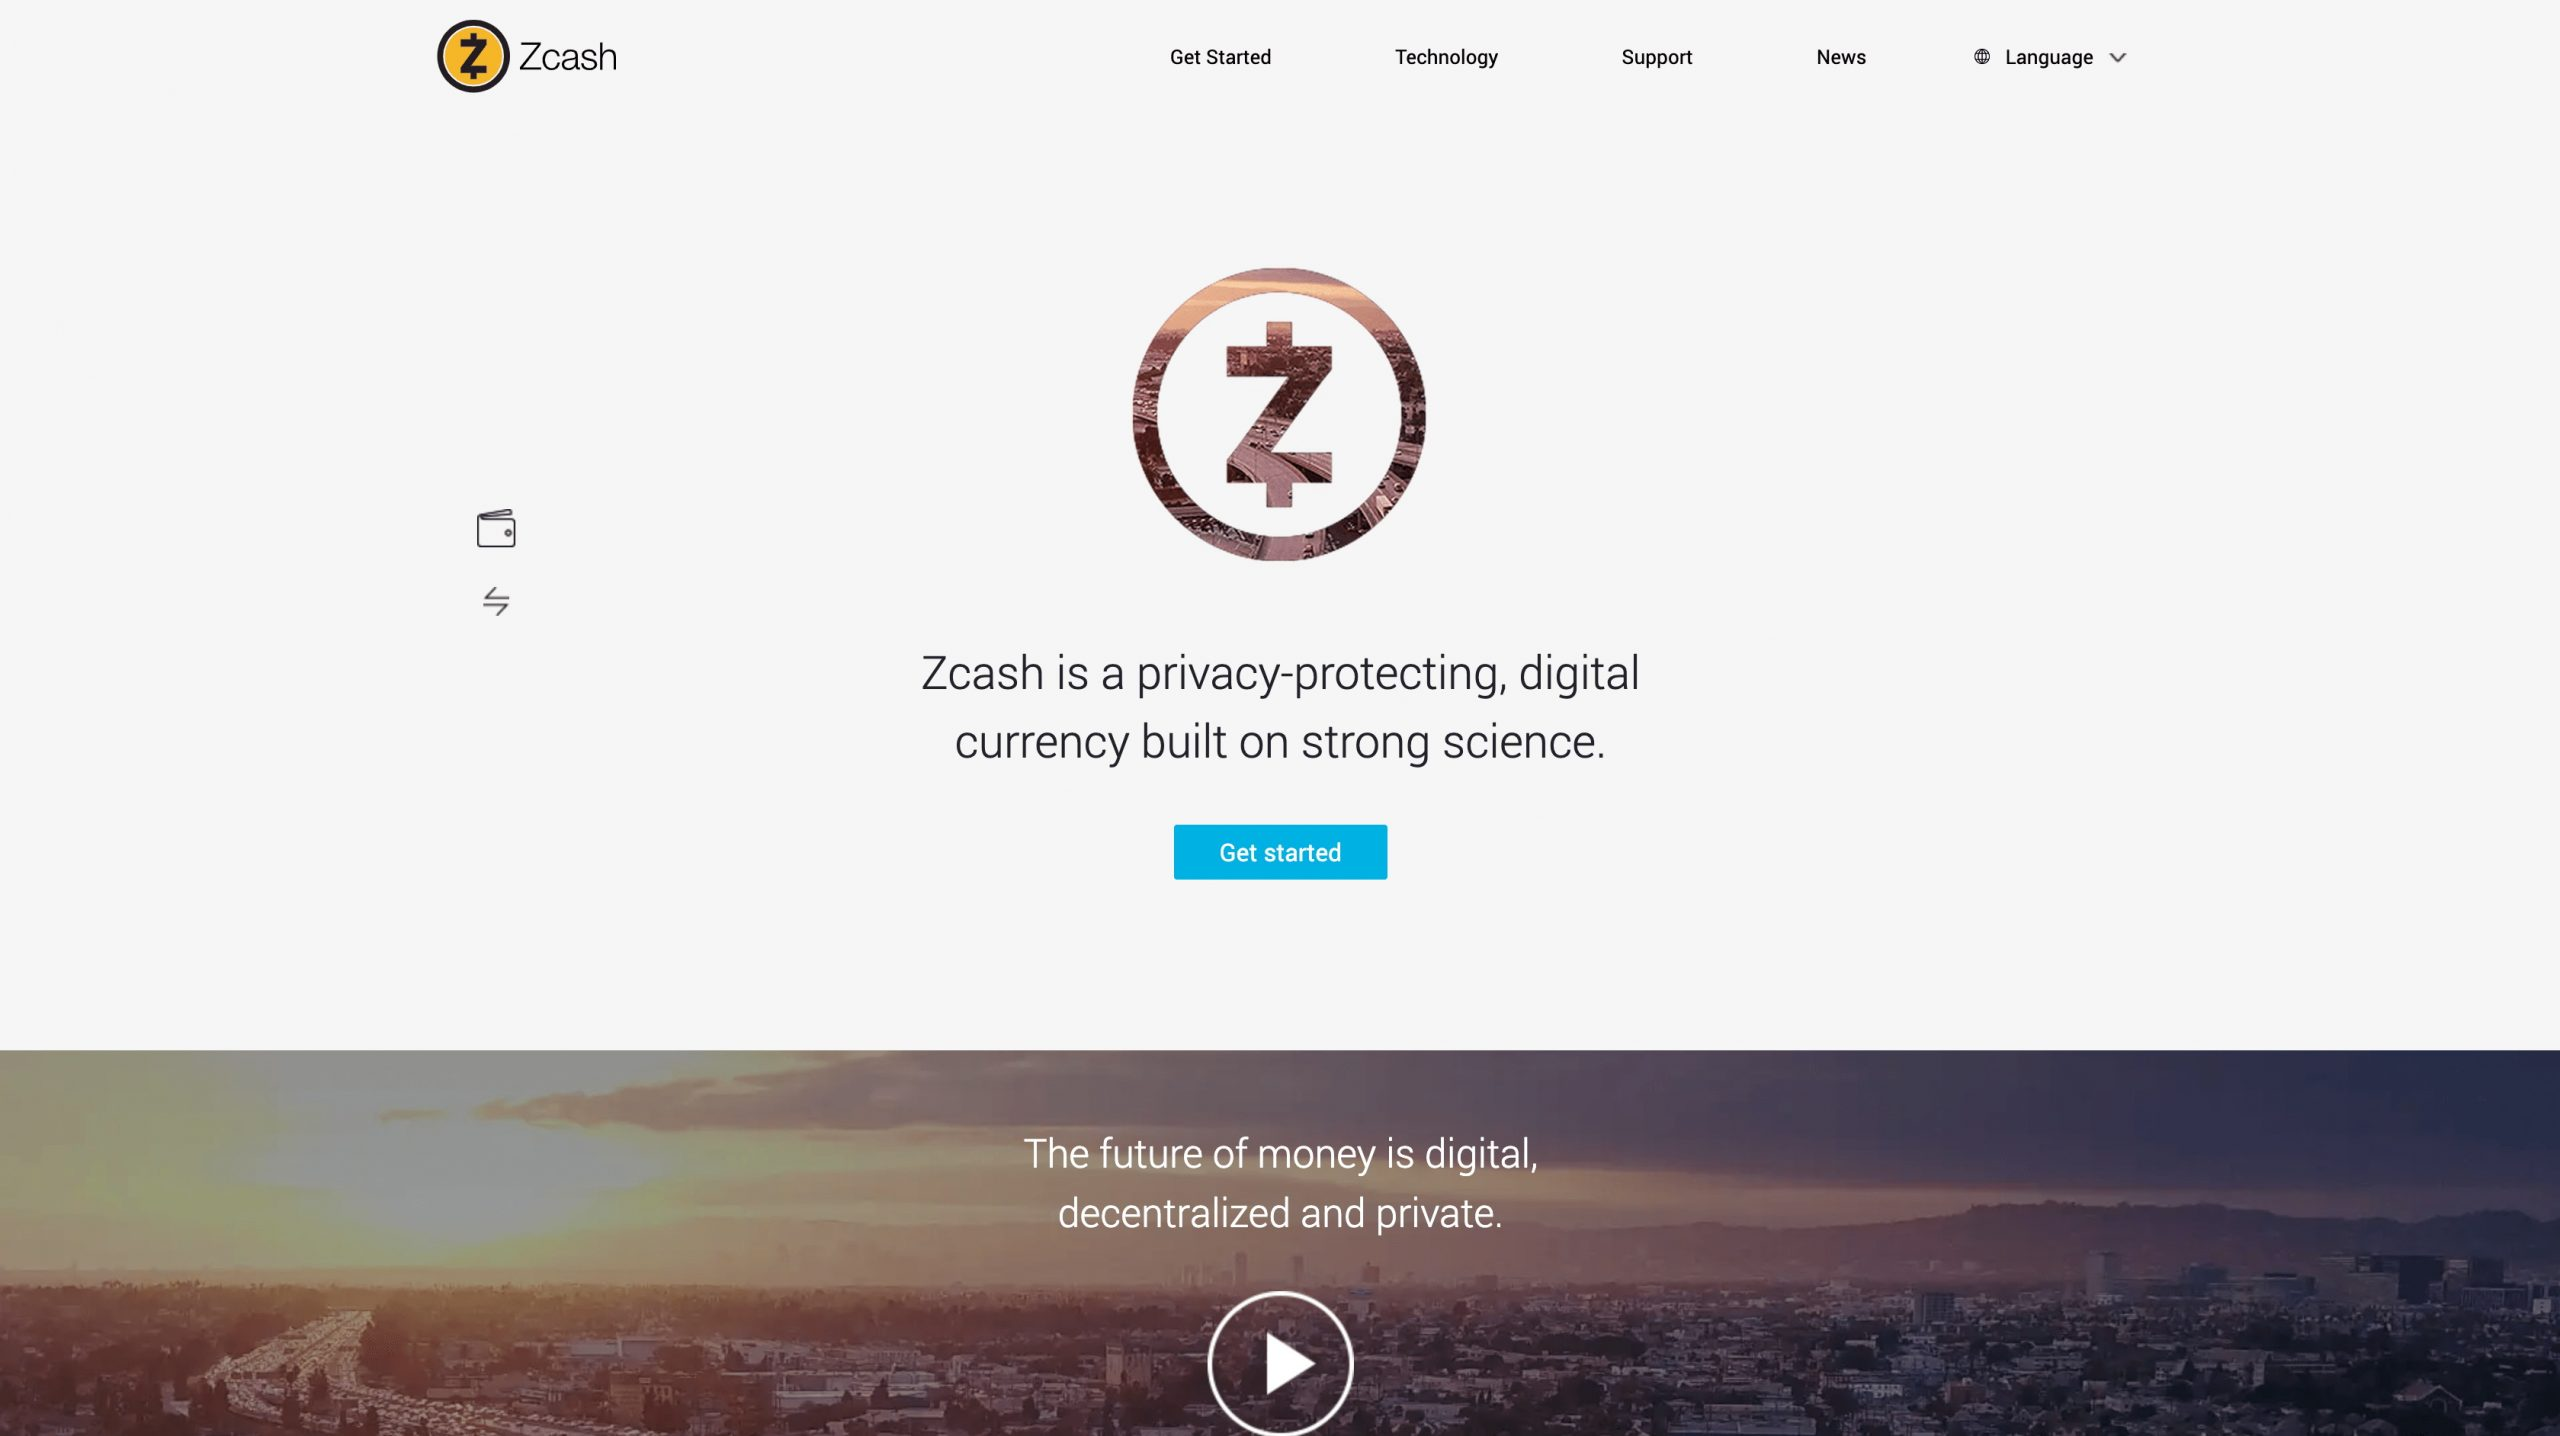 To invest Zcash